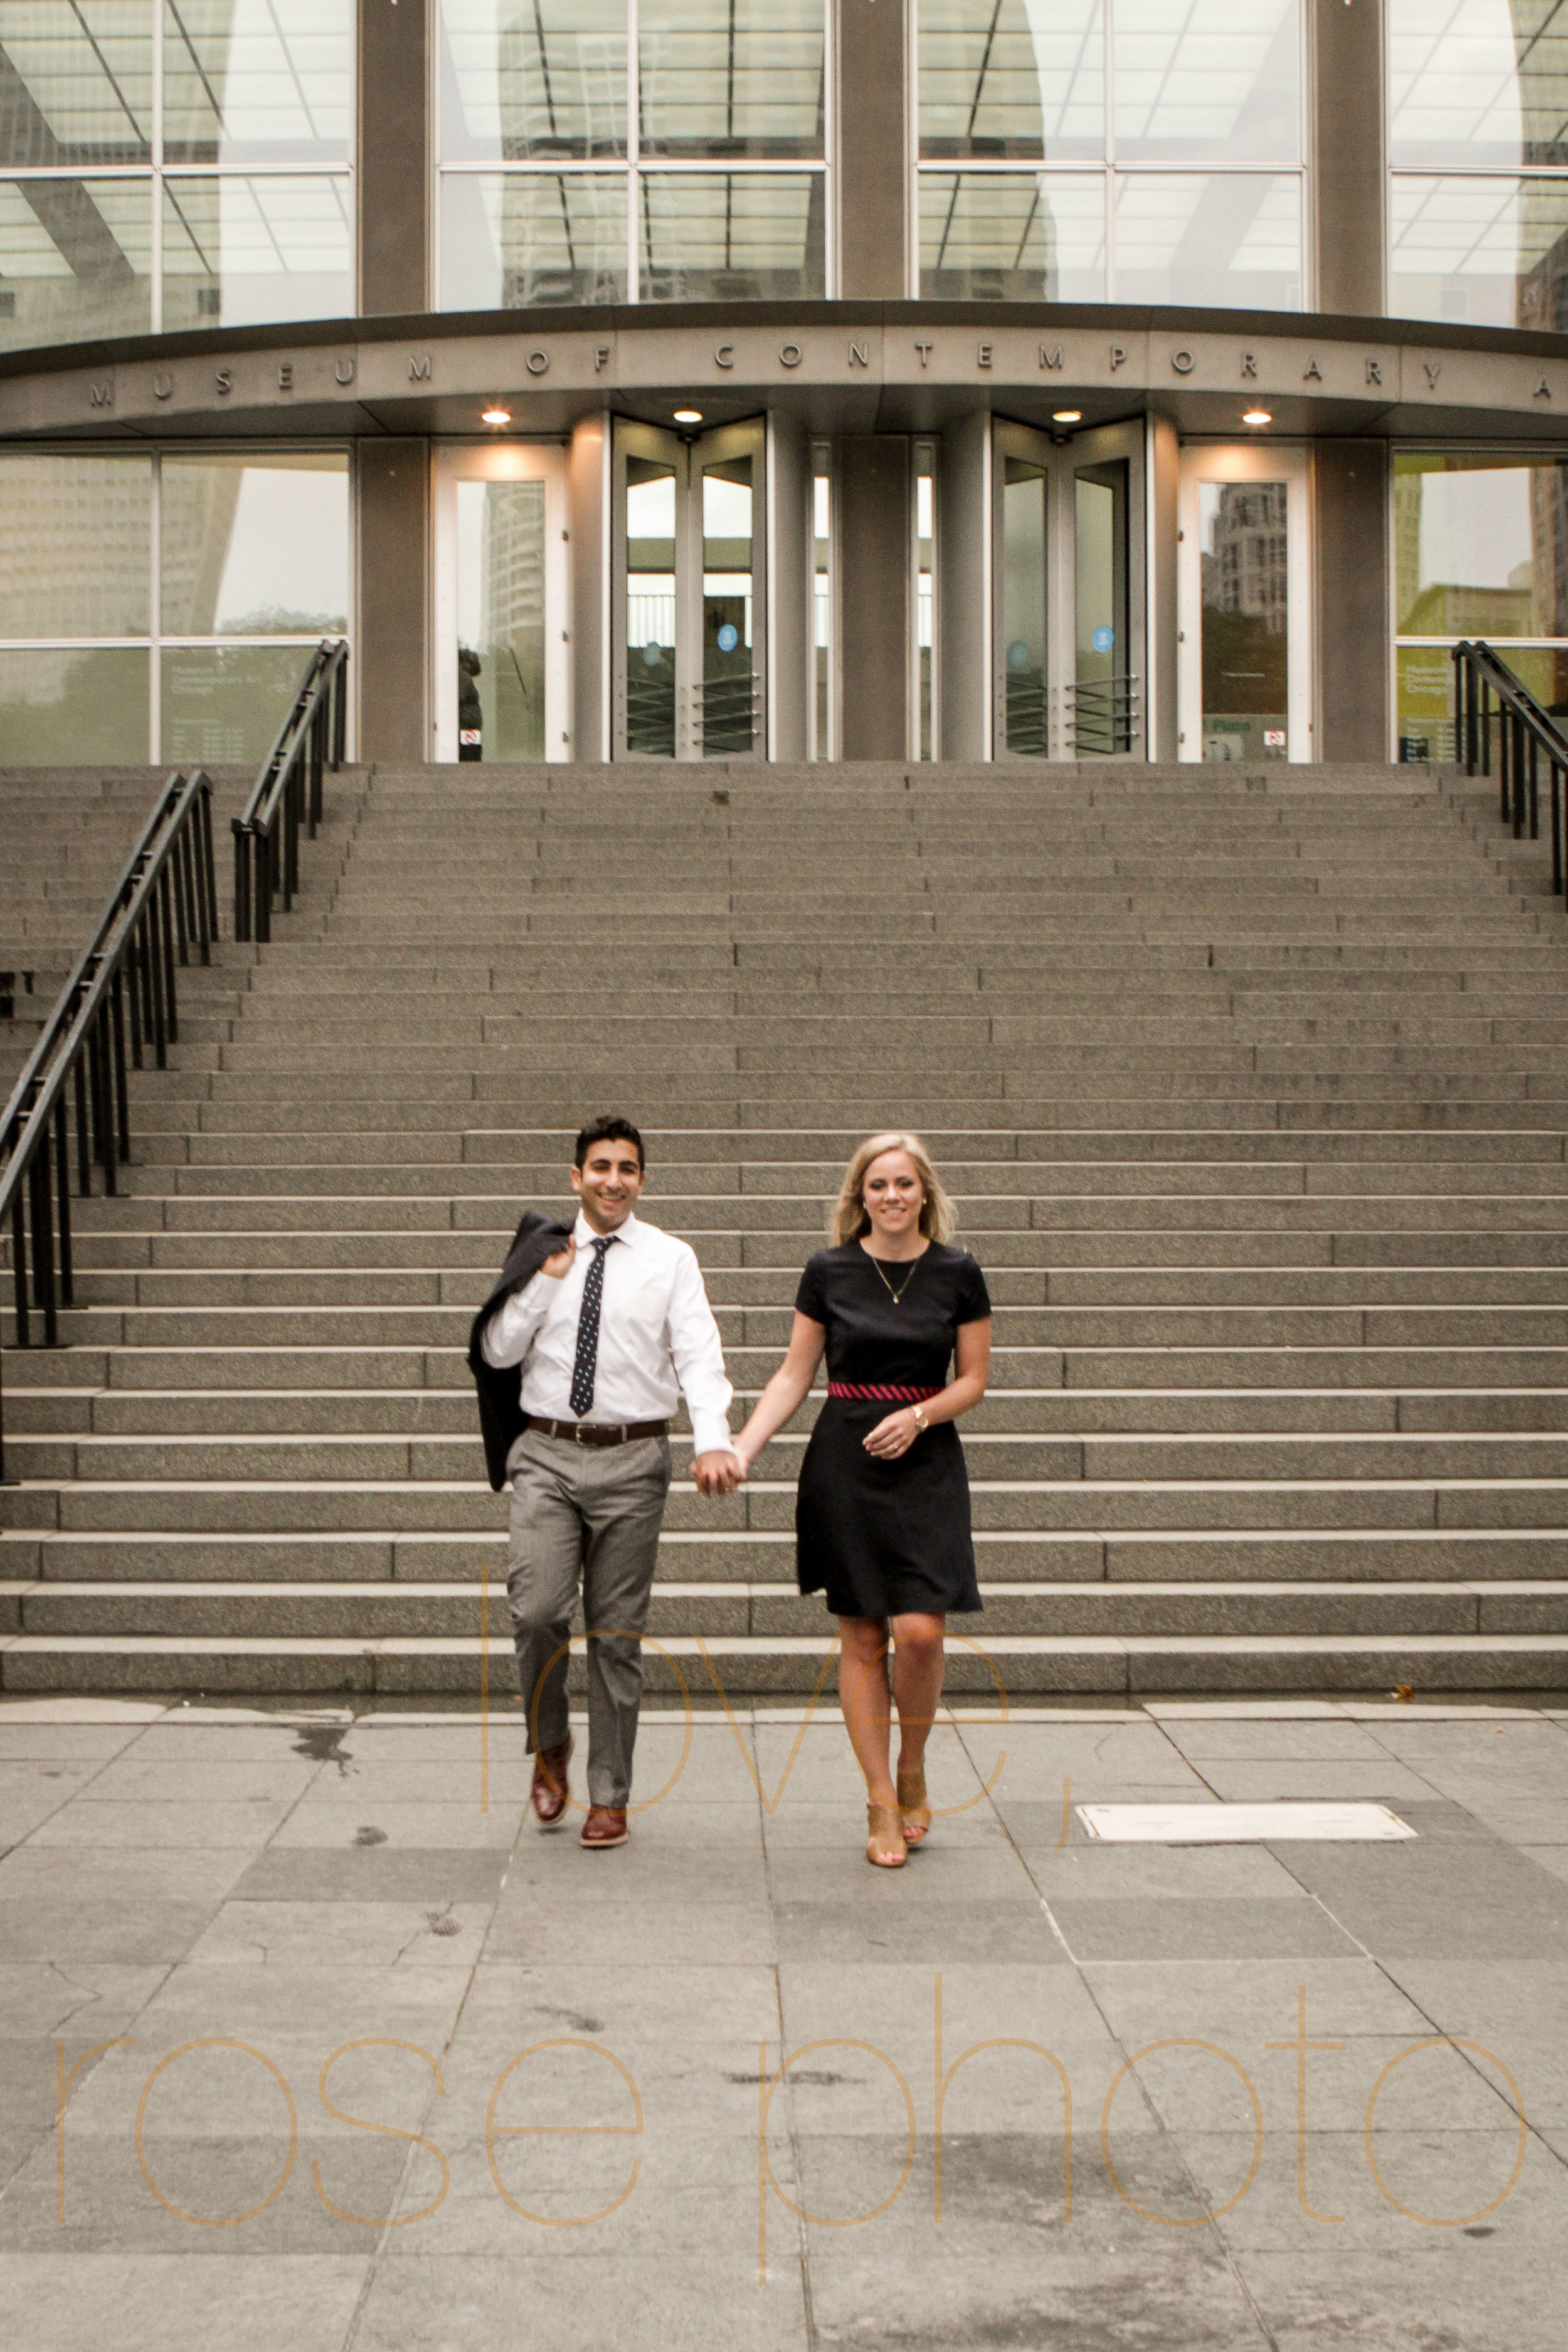 Amy + Ammar engagment shoot downtown drumbar magnificante mile chicago river wedding photographer-004.jpg